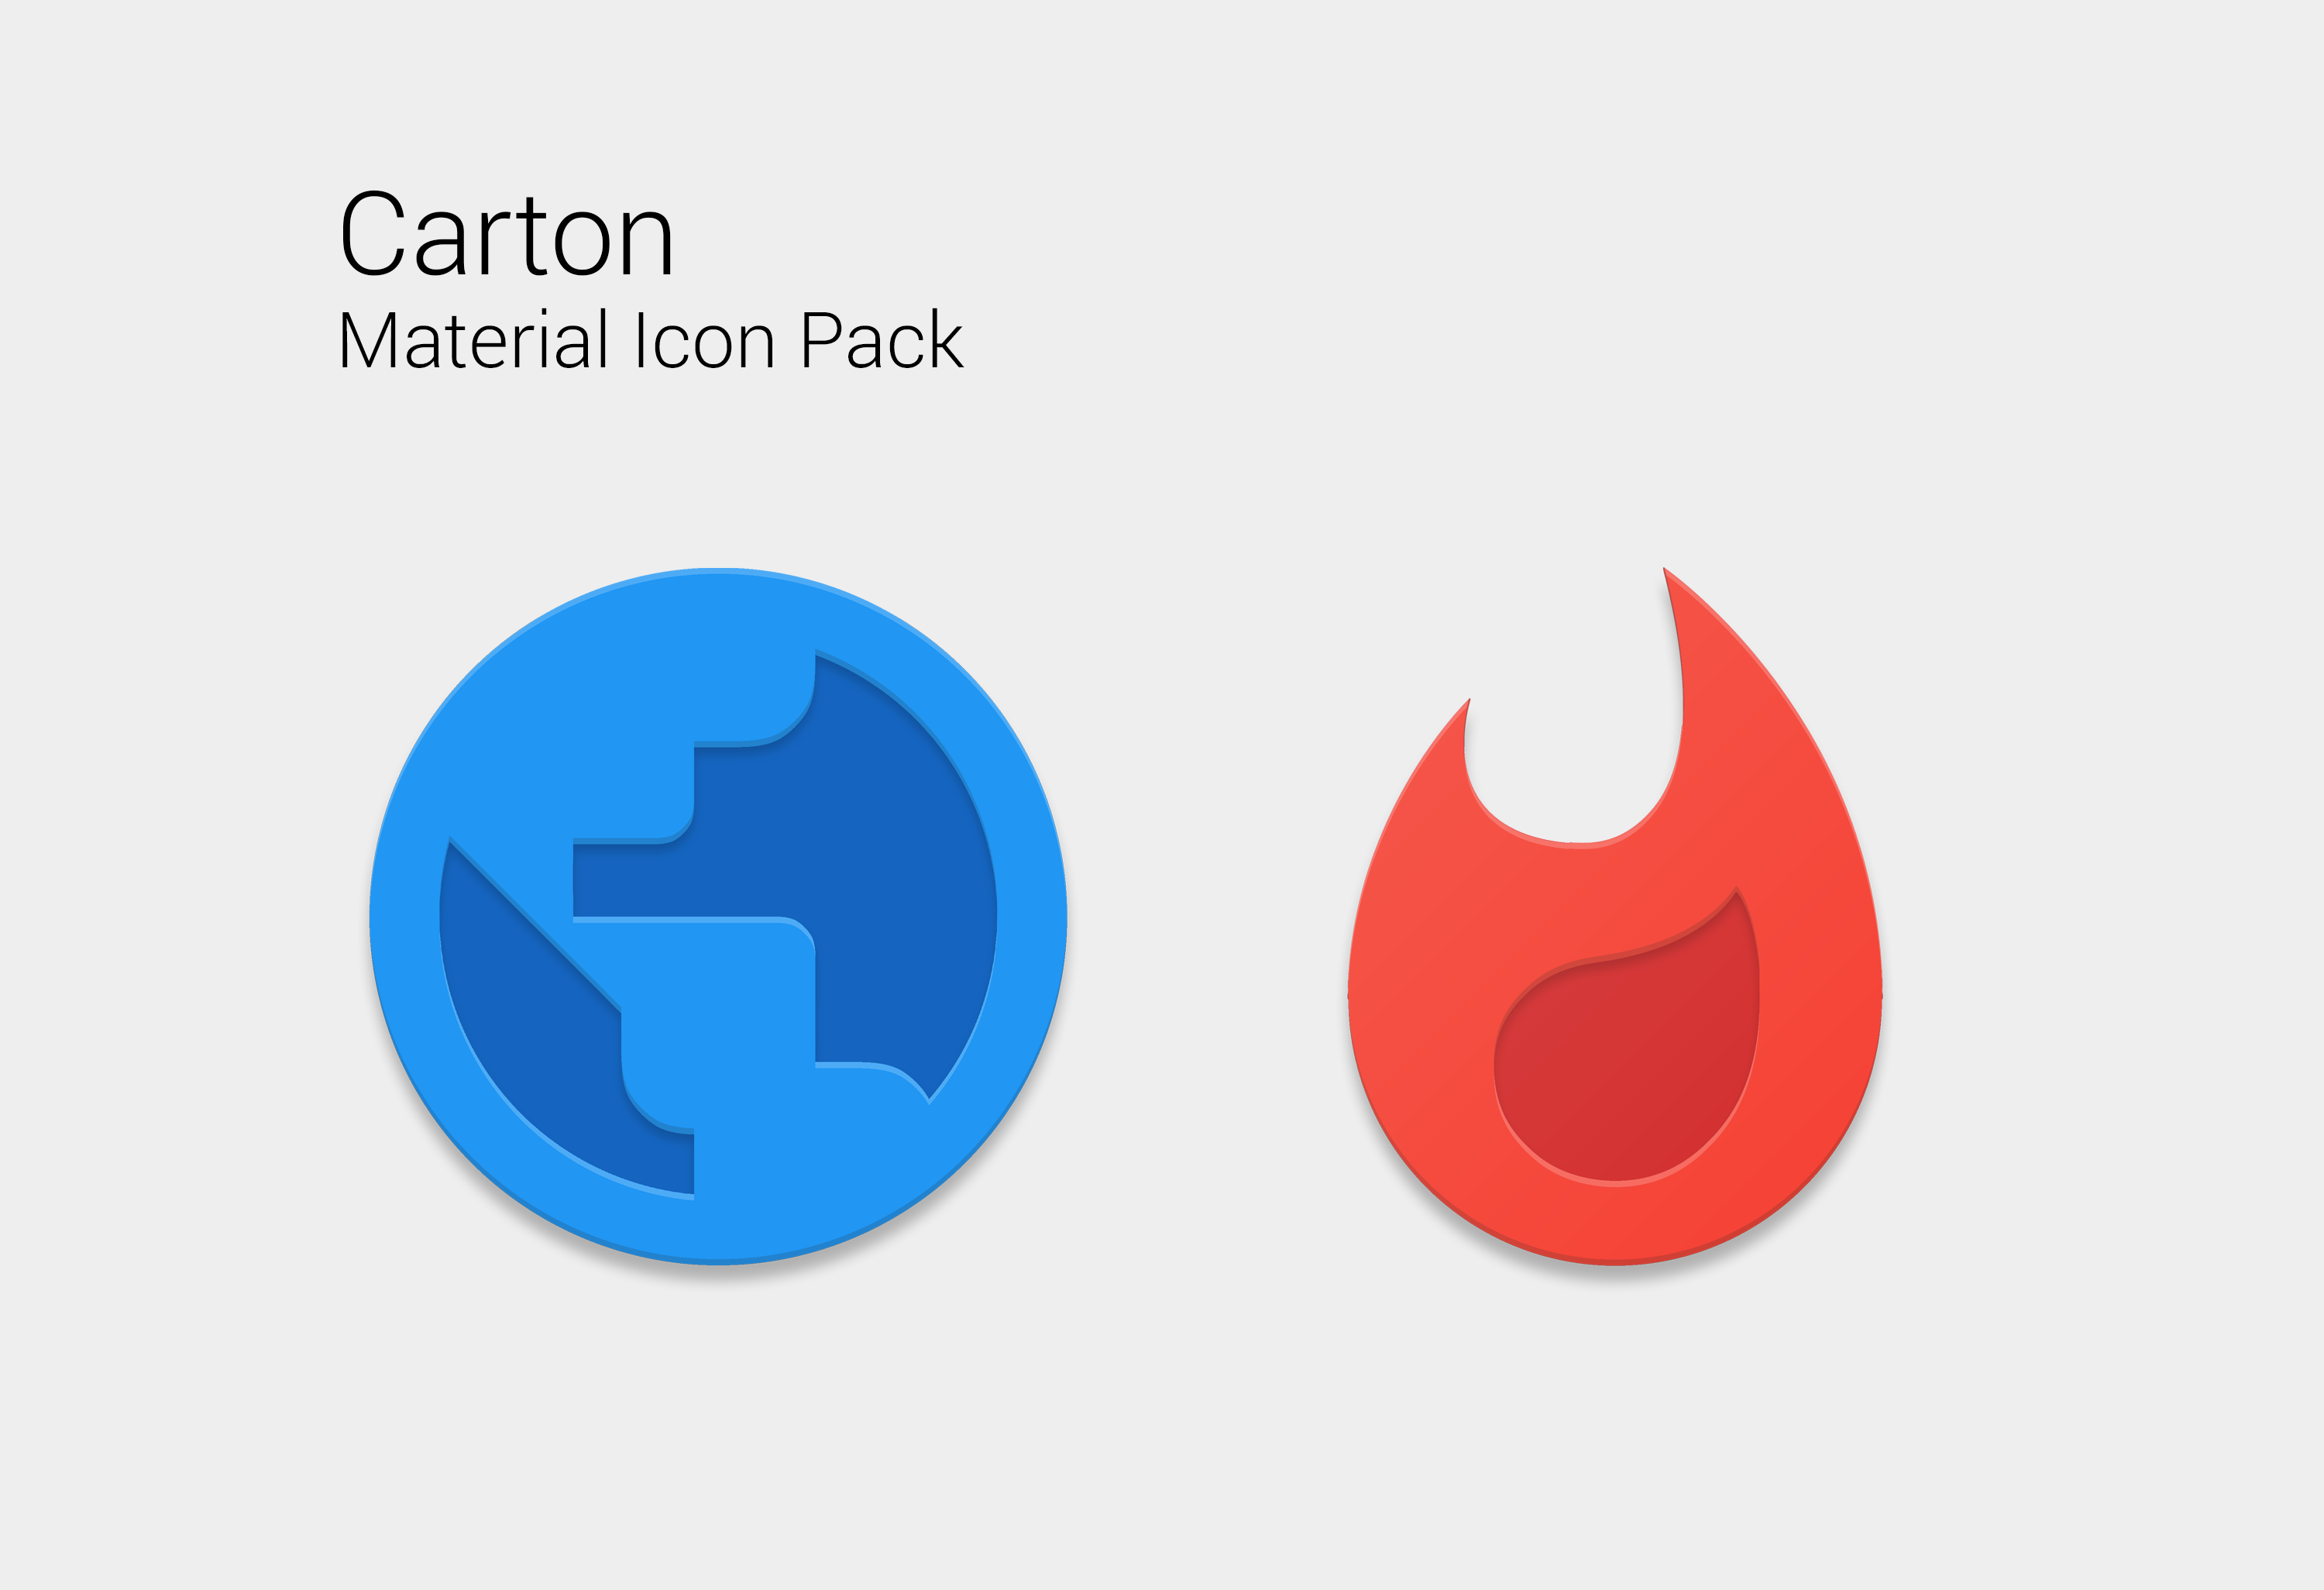 Tinder what icons mean do the How To